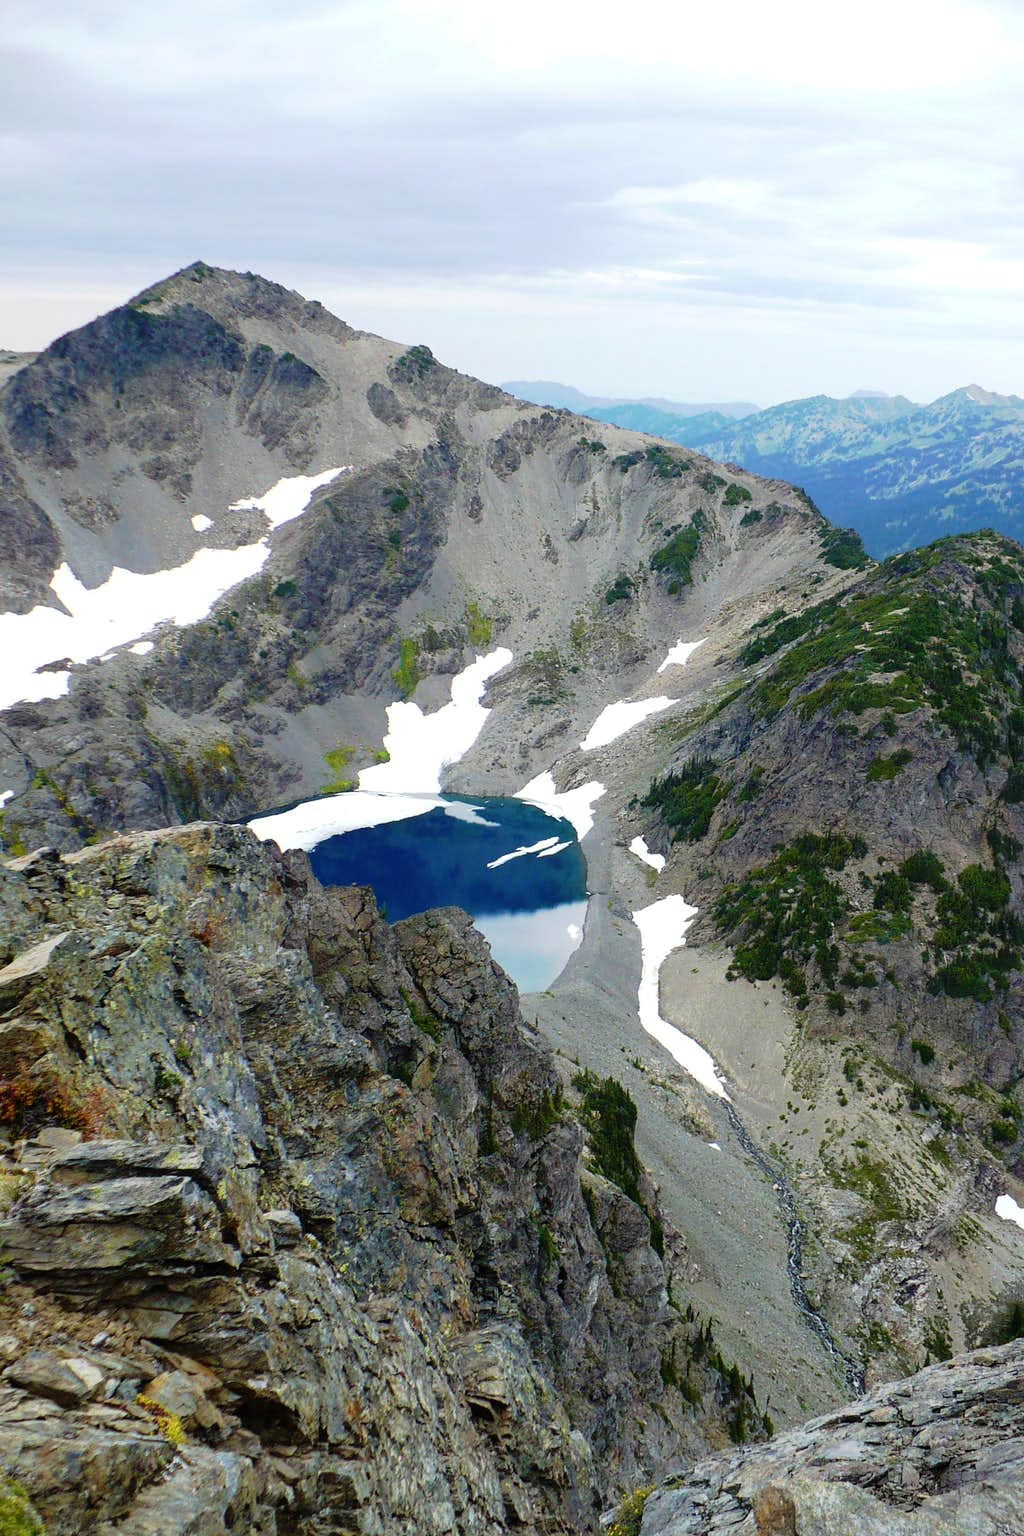 Claywood Lake from Mt. Fromme